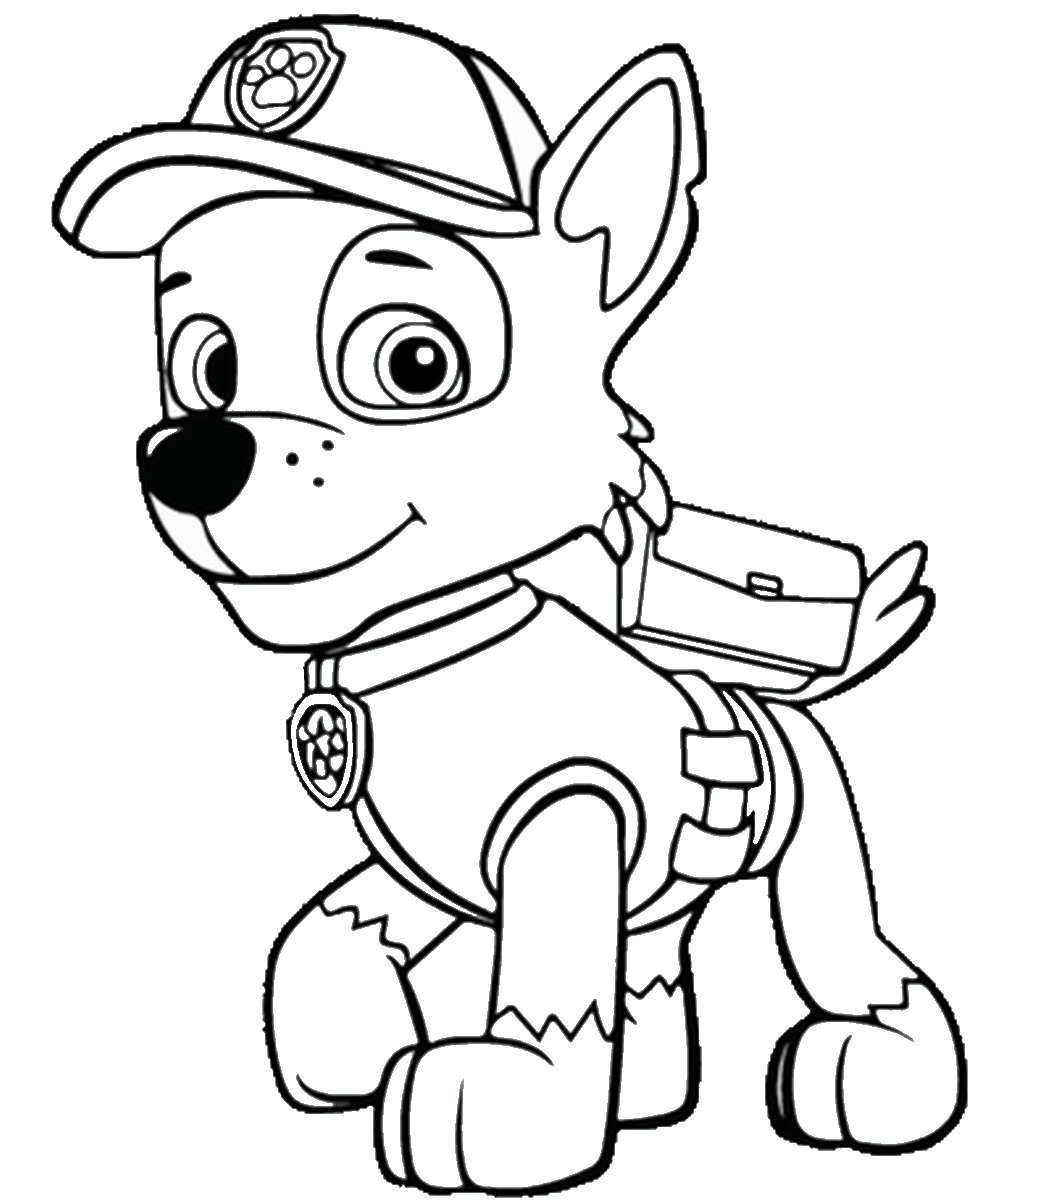 Paw Patrol Ausmalbilder Drucken : Paw Patrol Coloring Pages Printable Paw Patrol Birthday Party